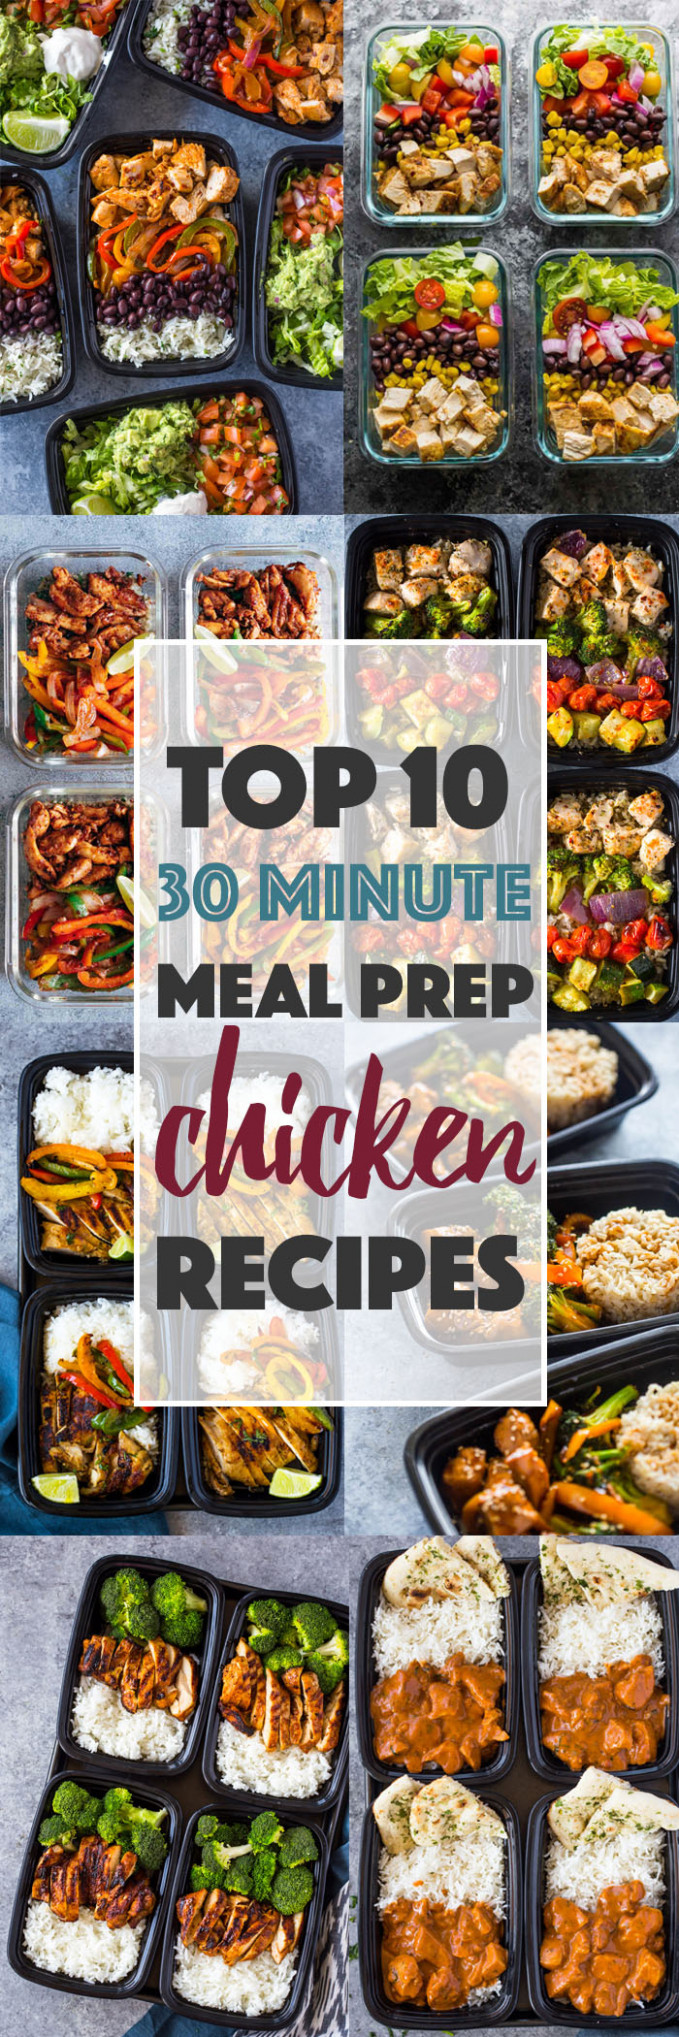 Top 14 (14 Minute) Meal Prep Chicken Recipes | Gimme Delicious - Chicken Recipes Quick